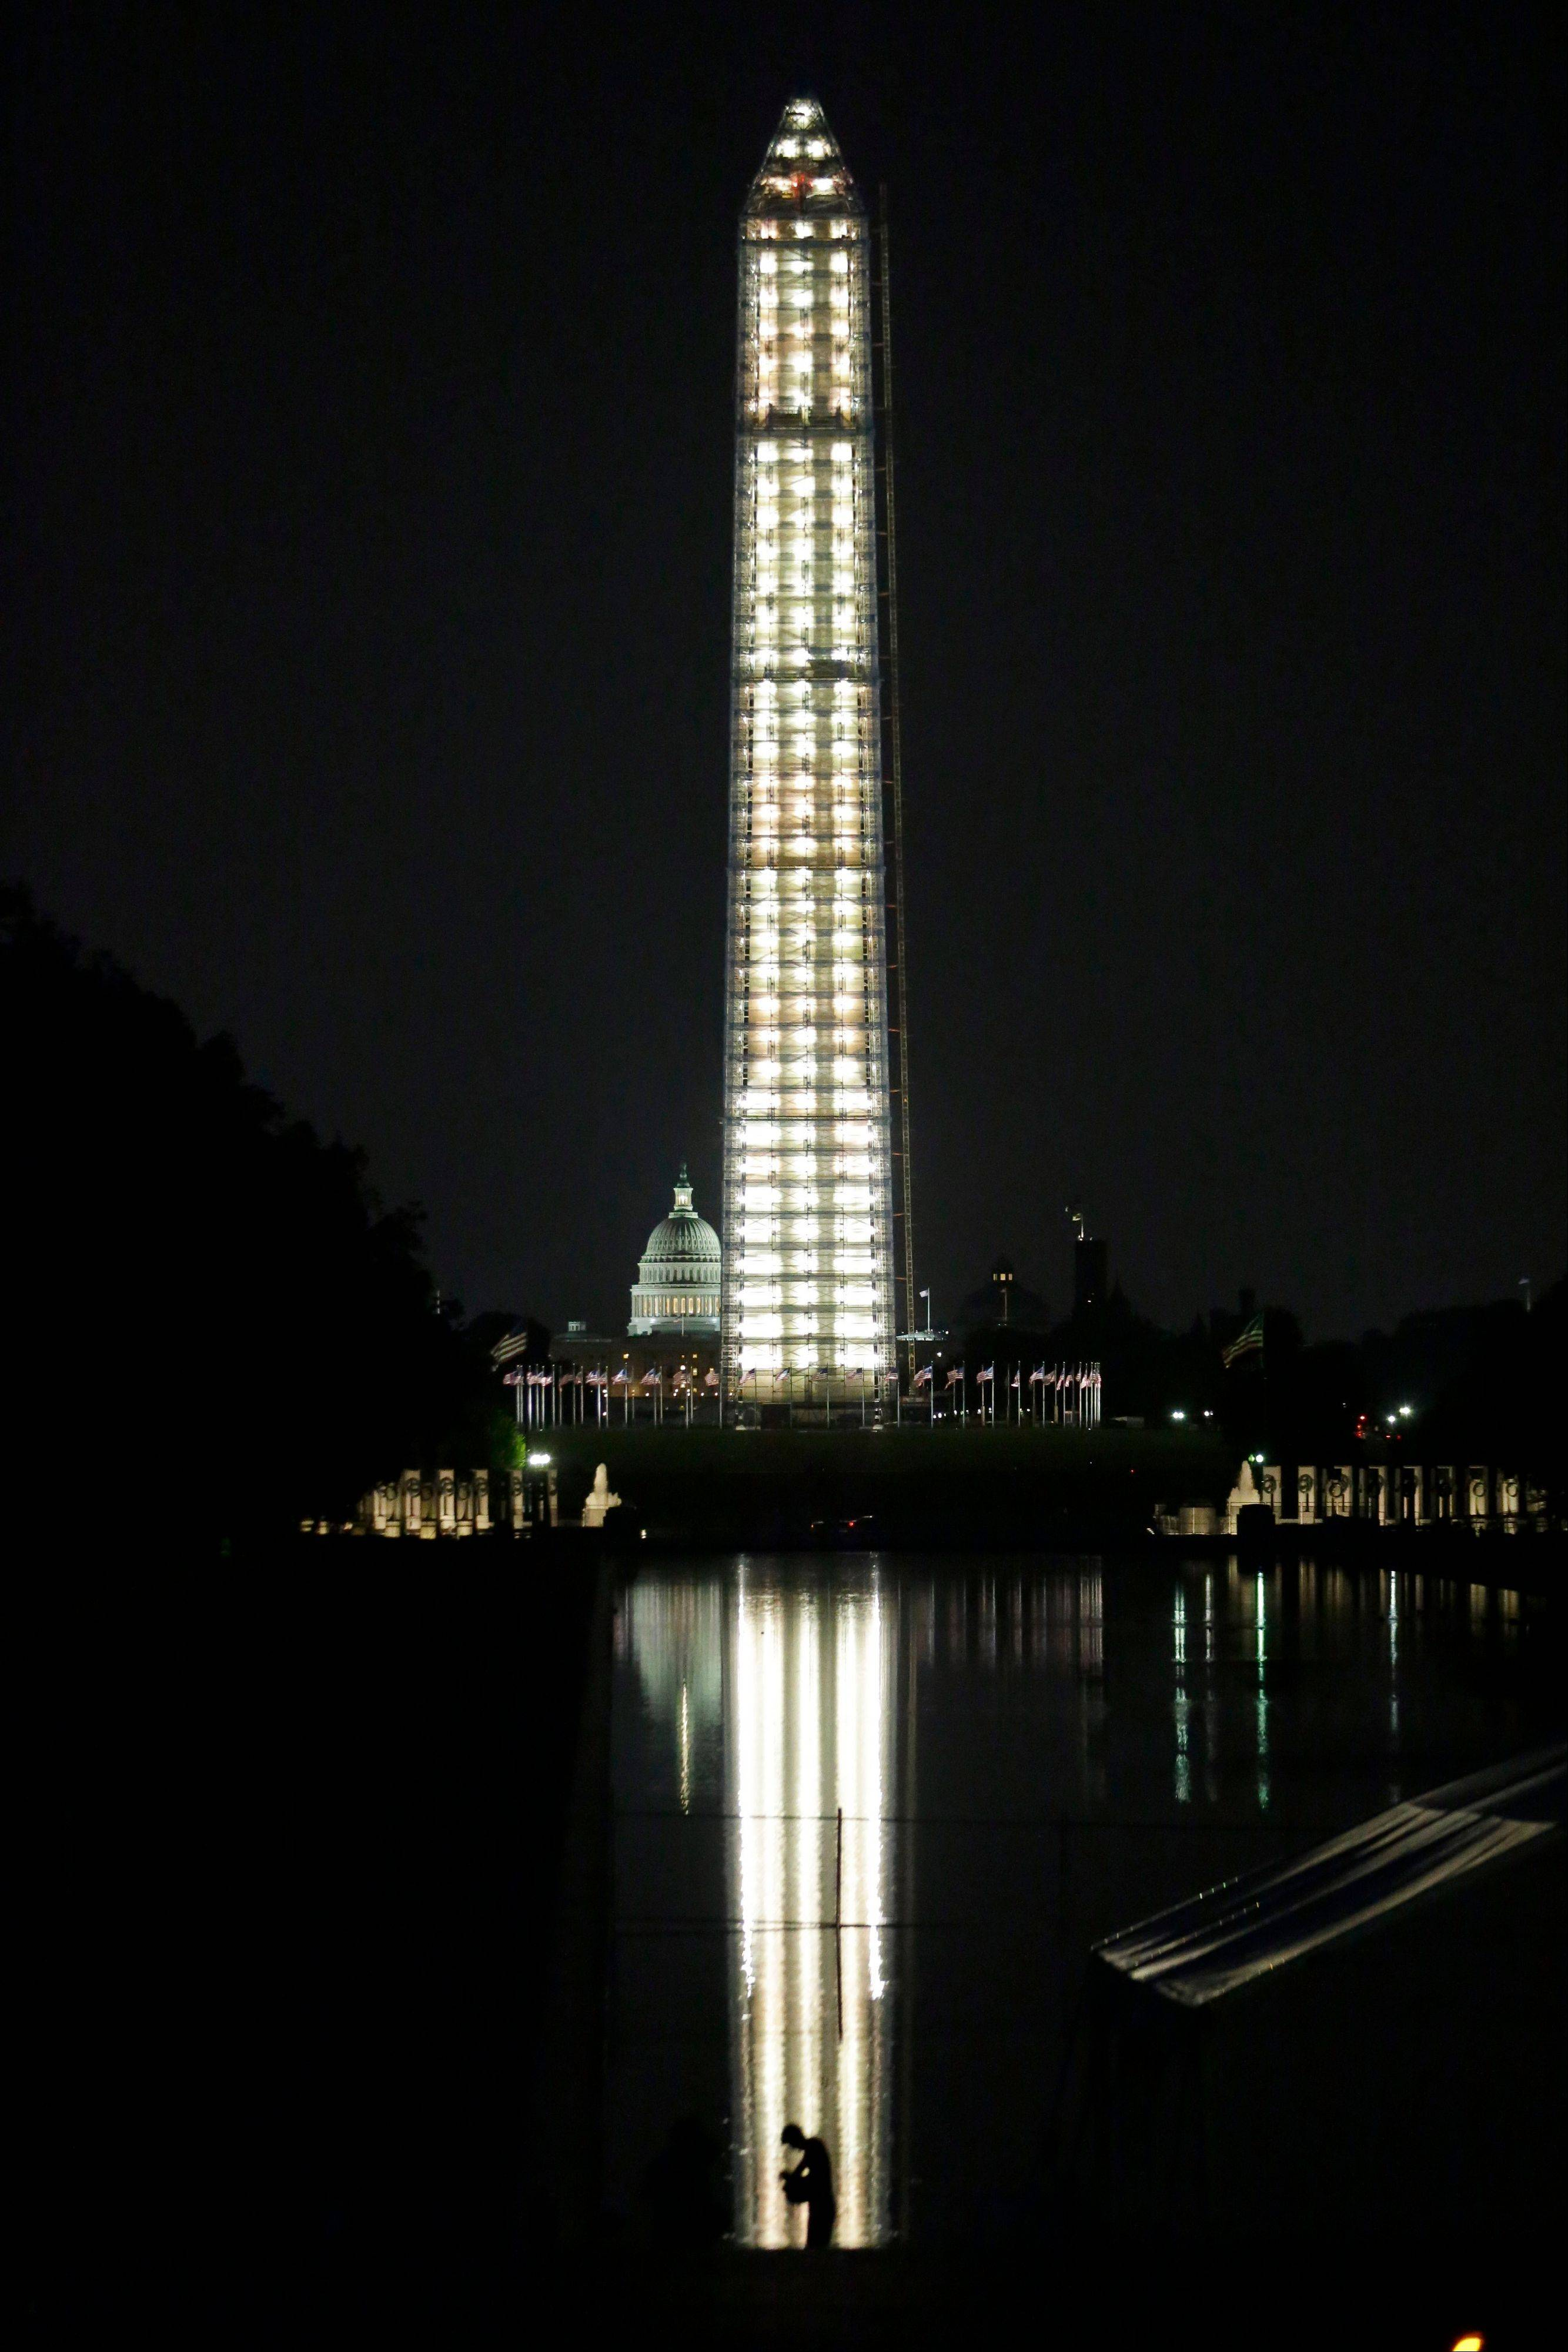 The Washington Monument is lit while undergoing repairs, with the U.S. Capitol behind. The National Park Service will light the monument each night at dusk while it undergoes repairs from the 2011 earthquake. It is expected to reopen in spring of 2014.